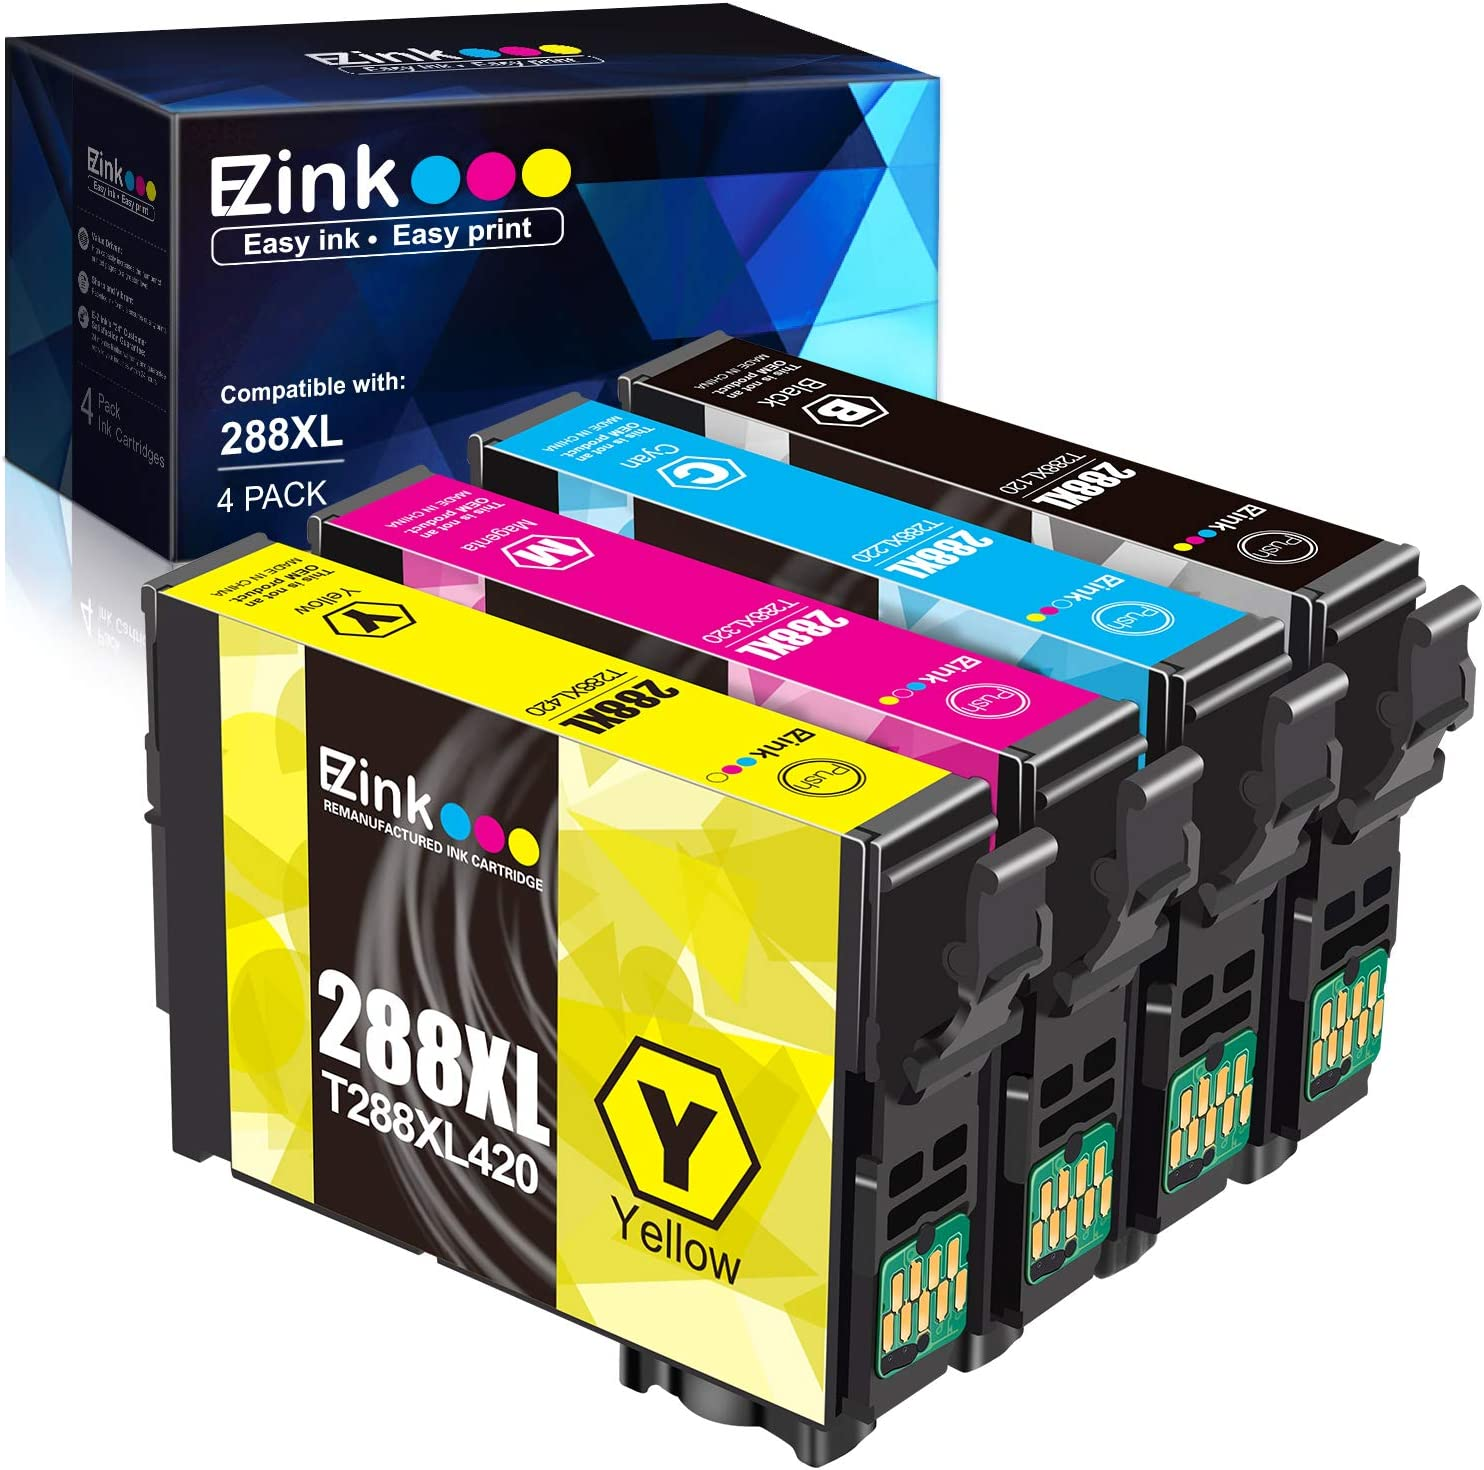 E-Z Ink (TM) Remanufactured Ink Cartridge Replacement for Epson 288XL 288 XL T288XL High Yield to use with Expression Home XP-330 XP-430 XP-446 XP-440 XP-340 (Upgraded Version, 4 Pack)